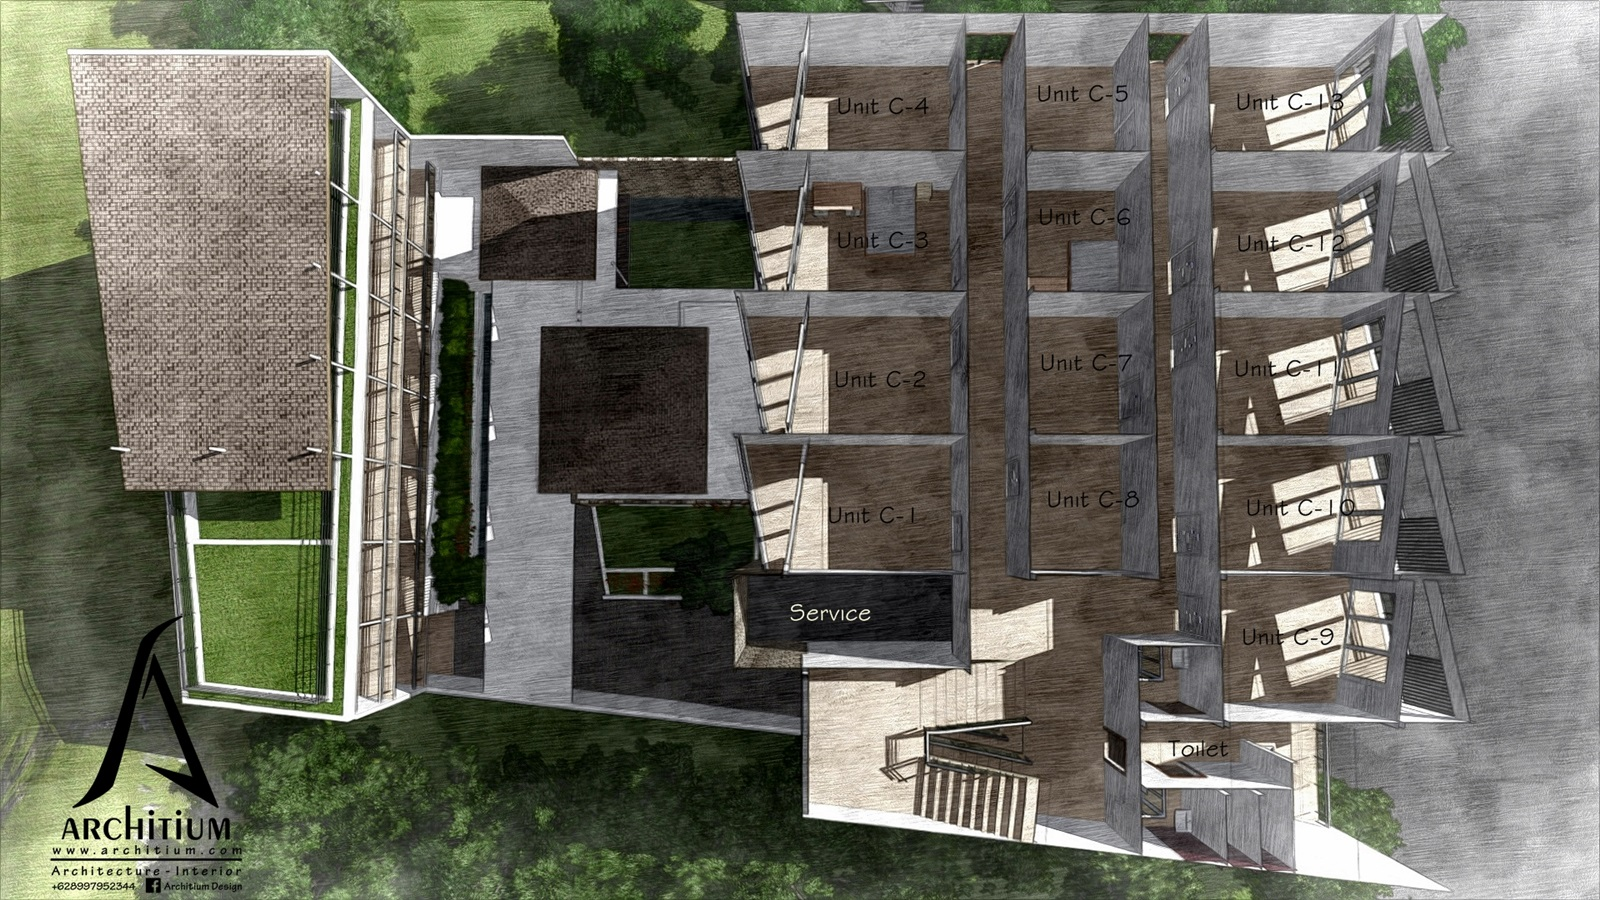 Architecture-Boarding House-Bandung-L2